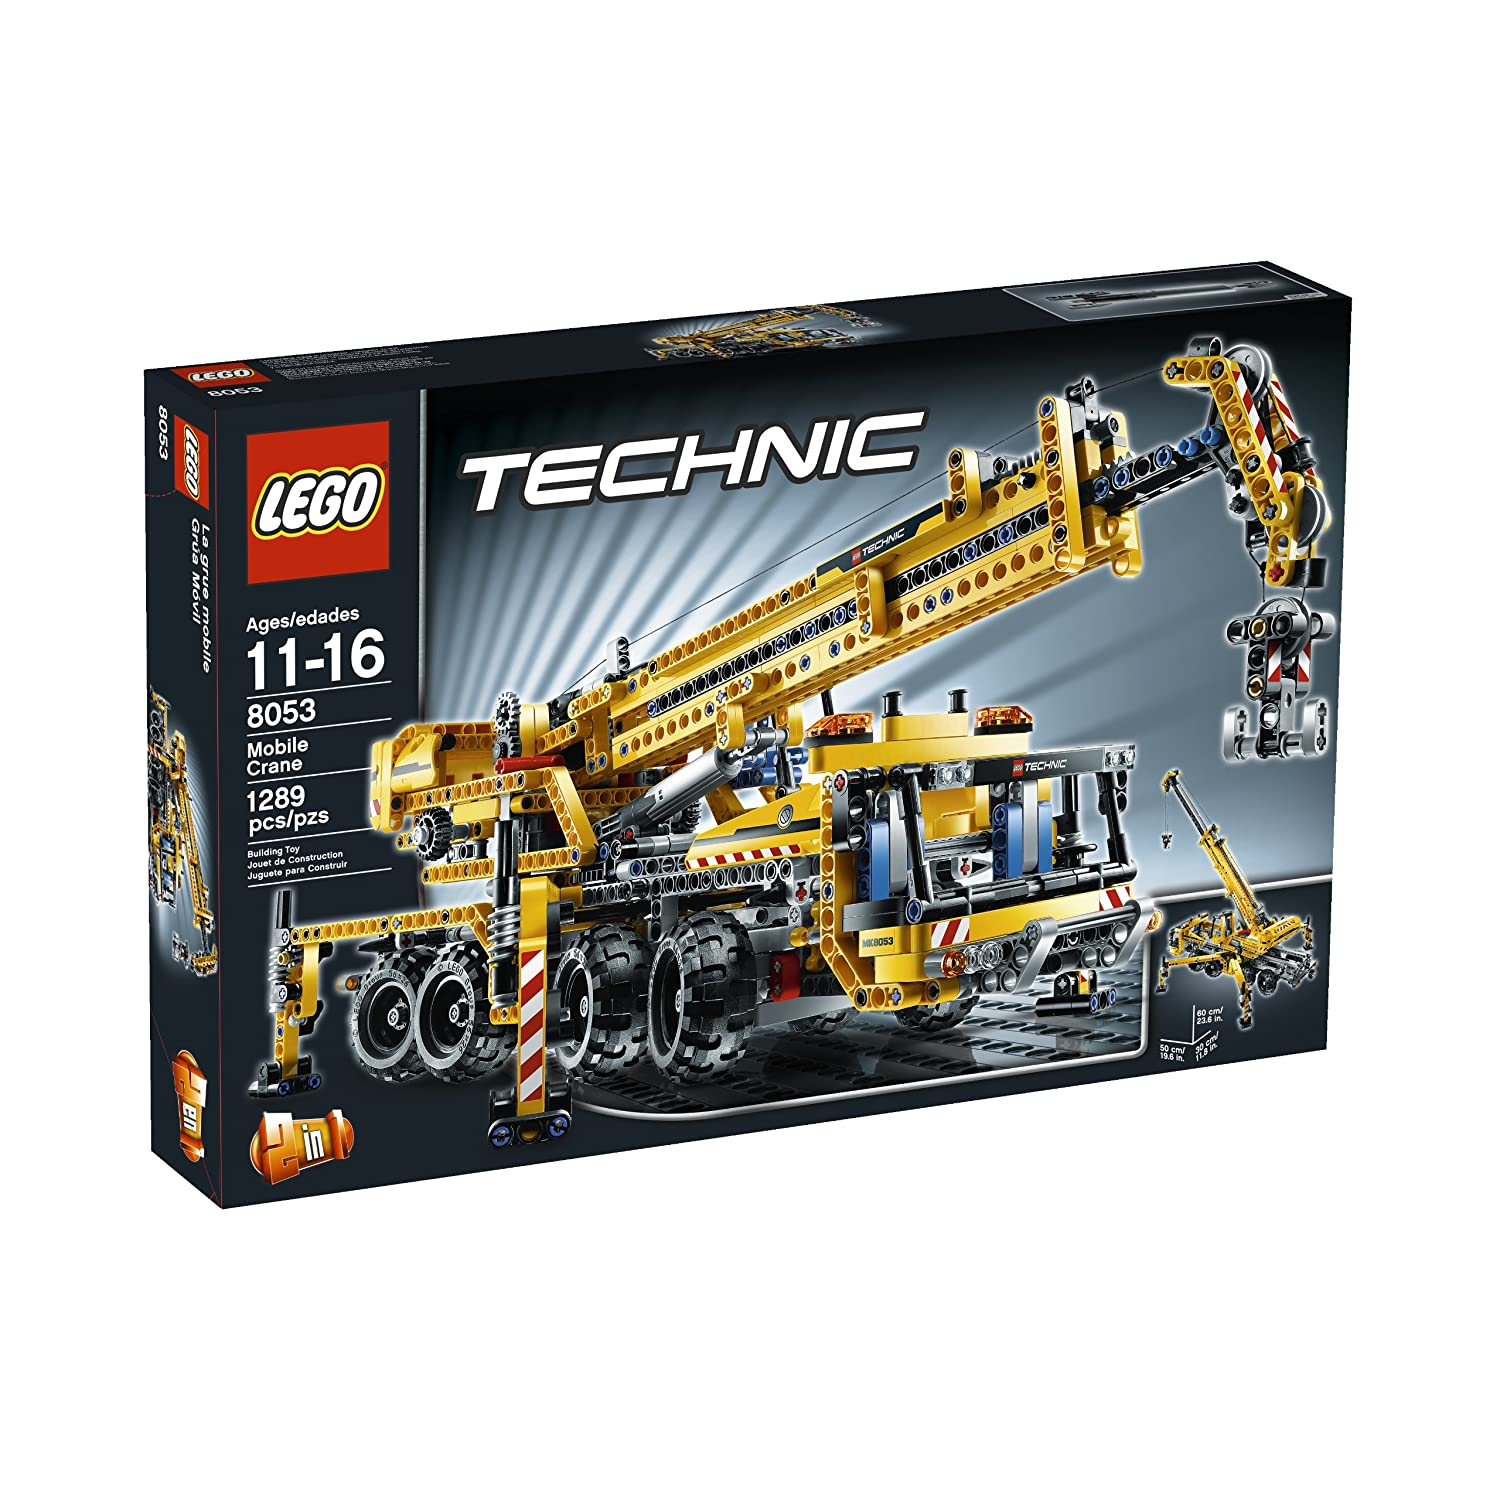 lego technic model 8053 mobile crane set 1289 pcs brand new ebay. Black Bedroom Furniture Sets. Home Design Ideas